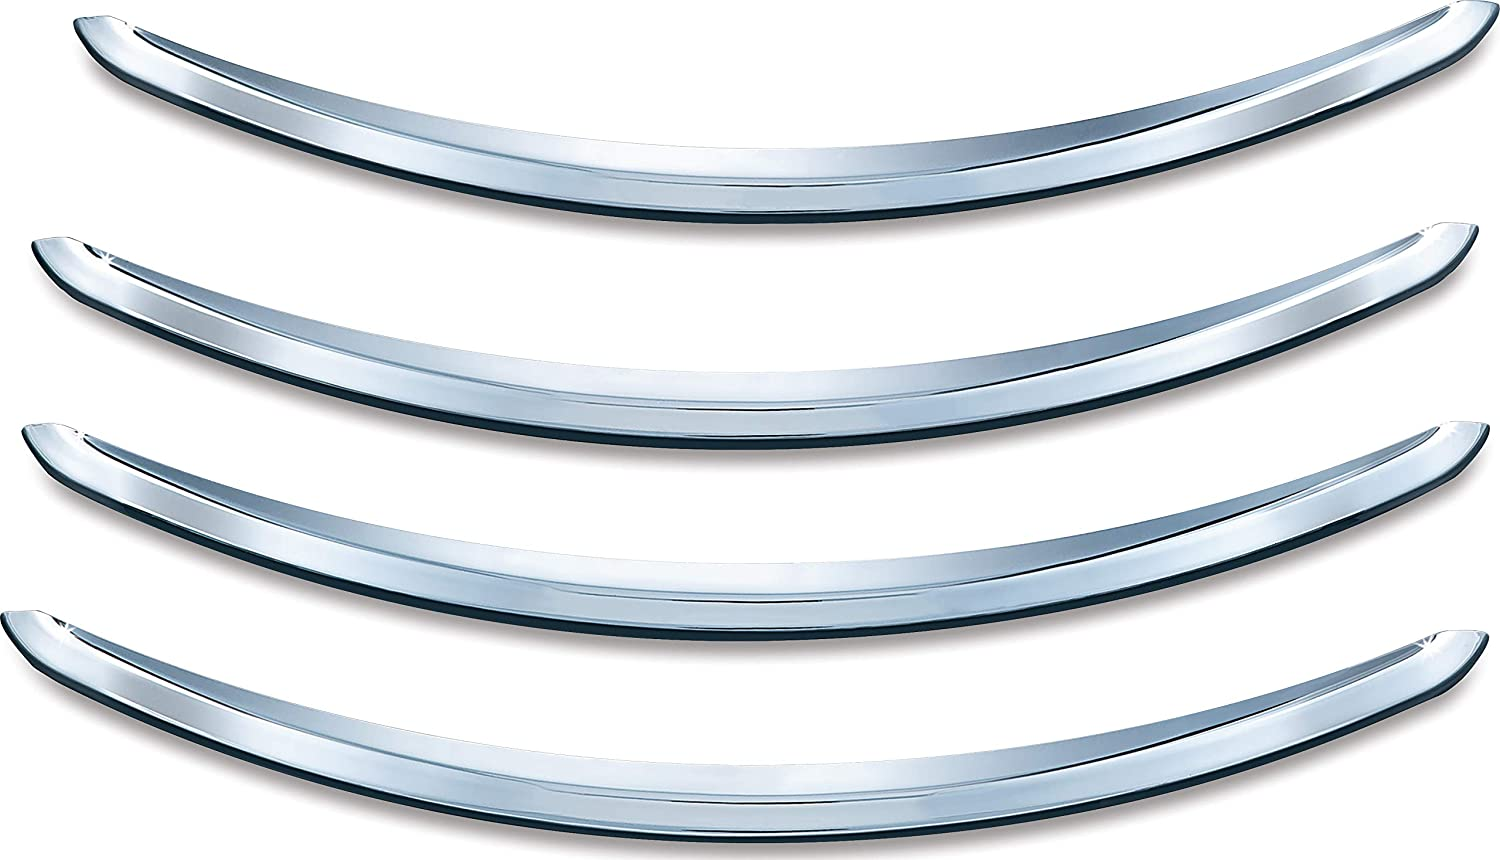 Kuryakyn 8643 Motorcycle Accent Accessory Trailing Edge Front Fender Tip for 1998-2019 Harley-Davidson Motorcycles Chrome